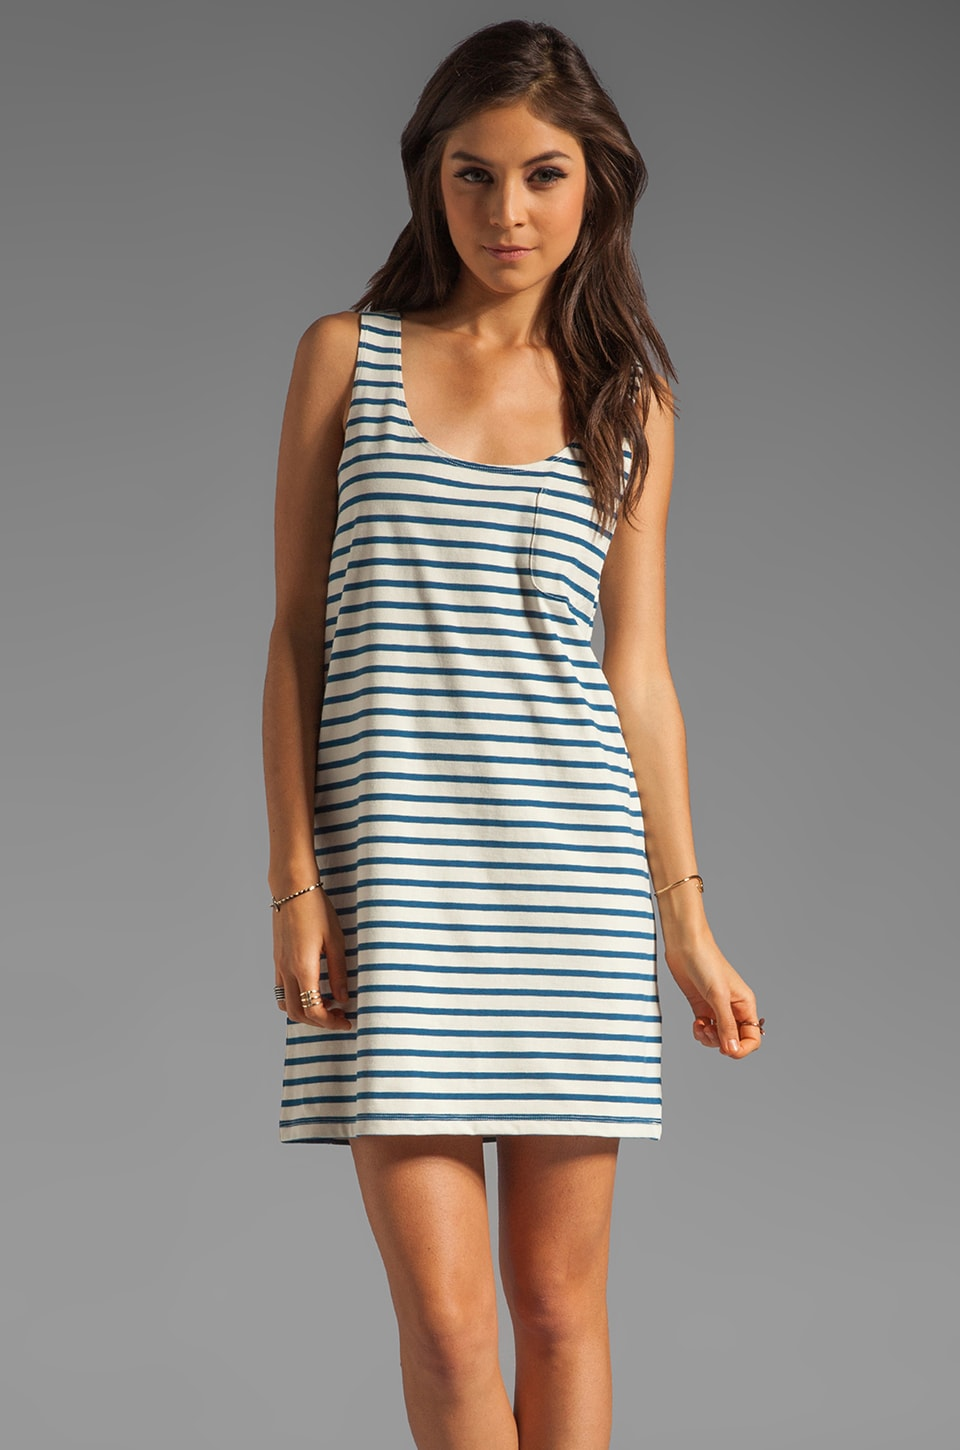 Joie Dawna Striped Dress in Porcelain/Dark Navy